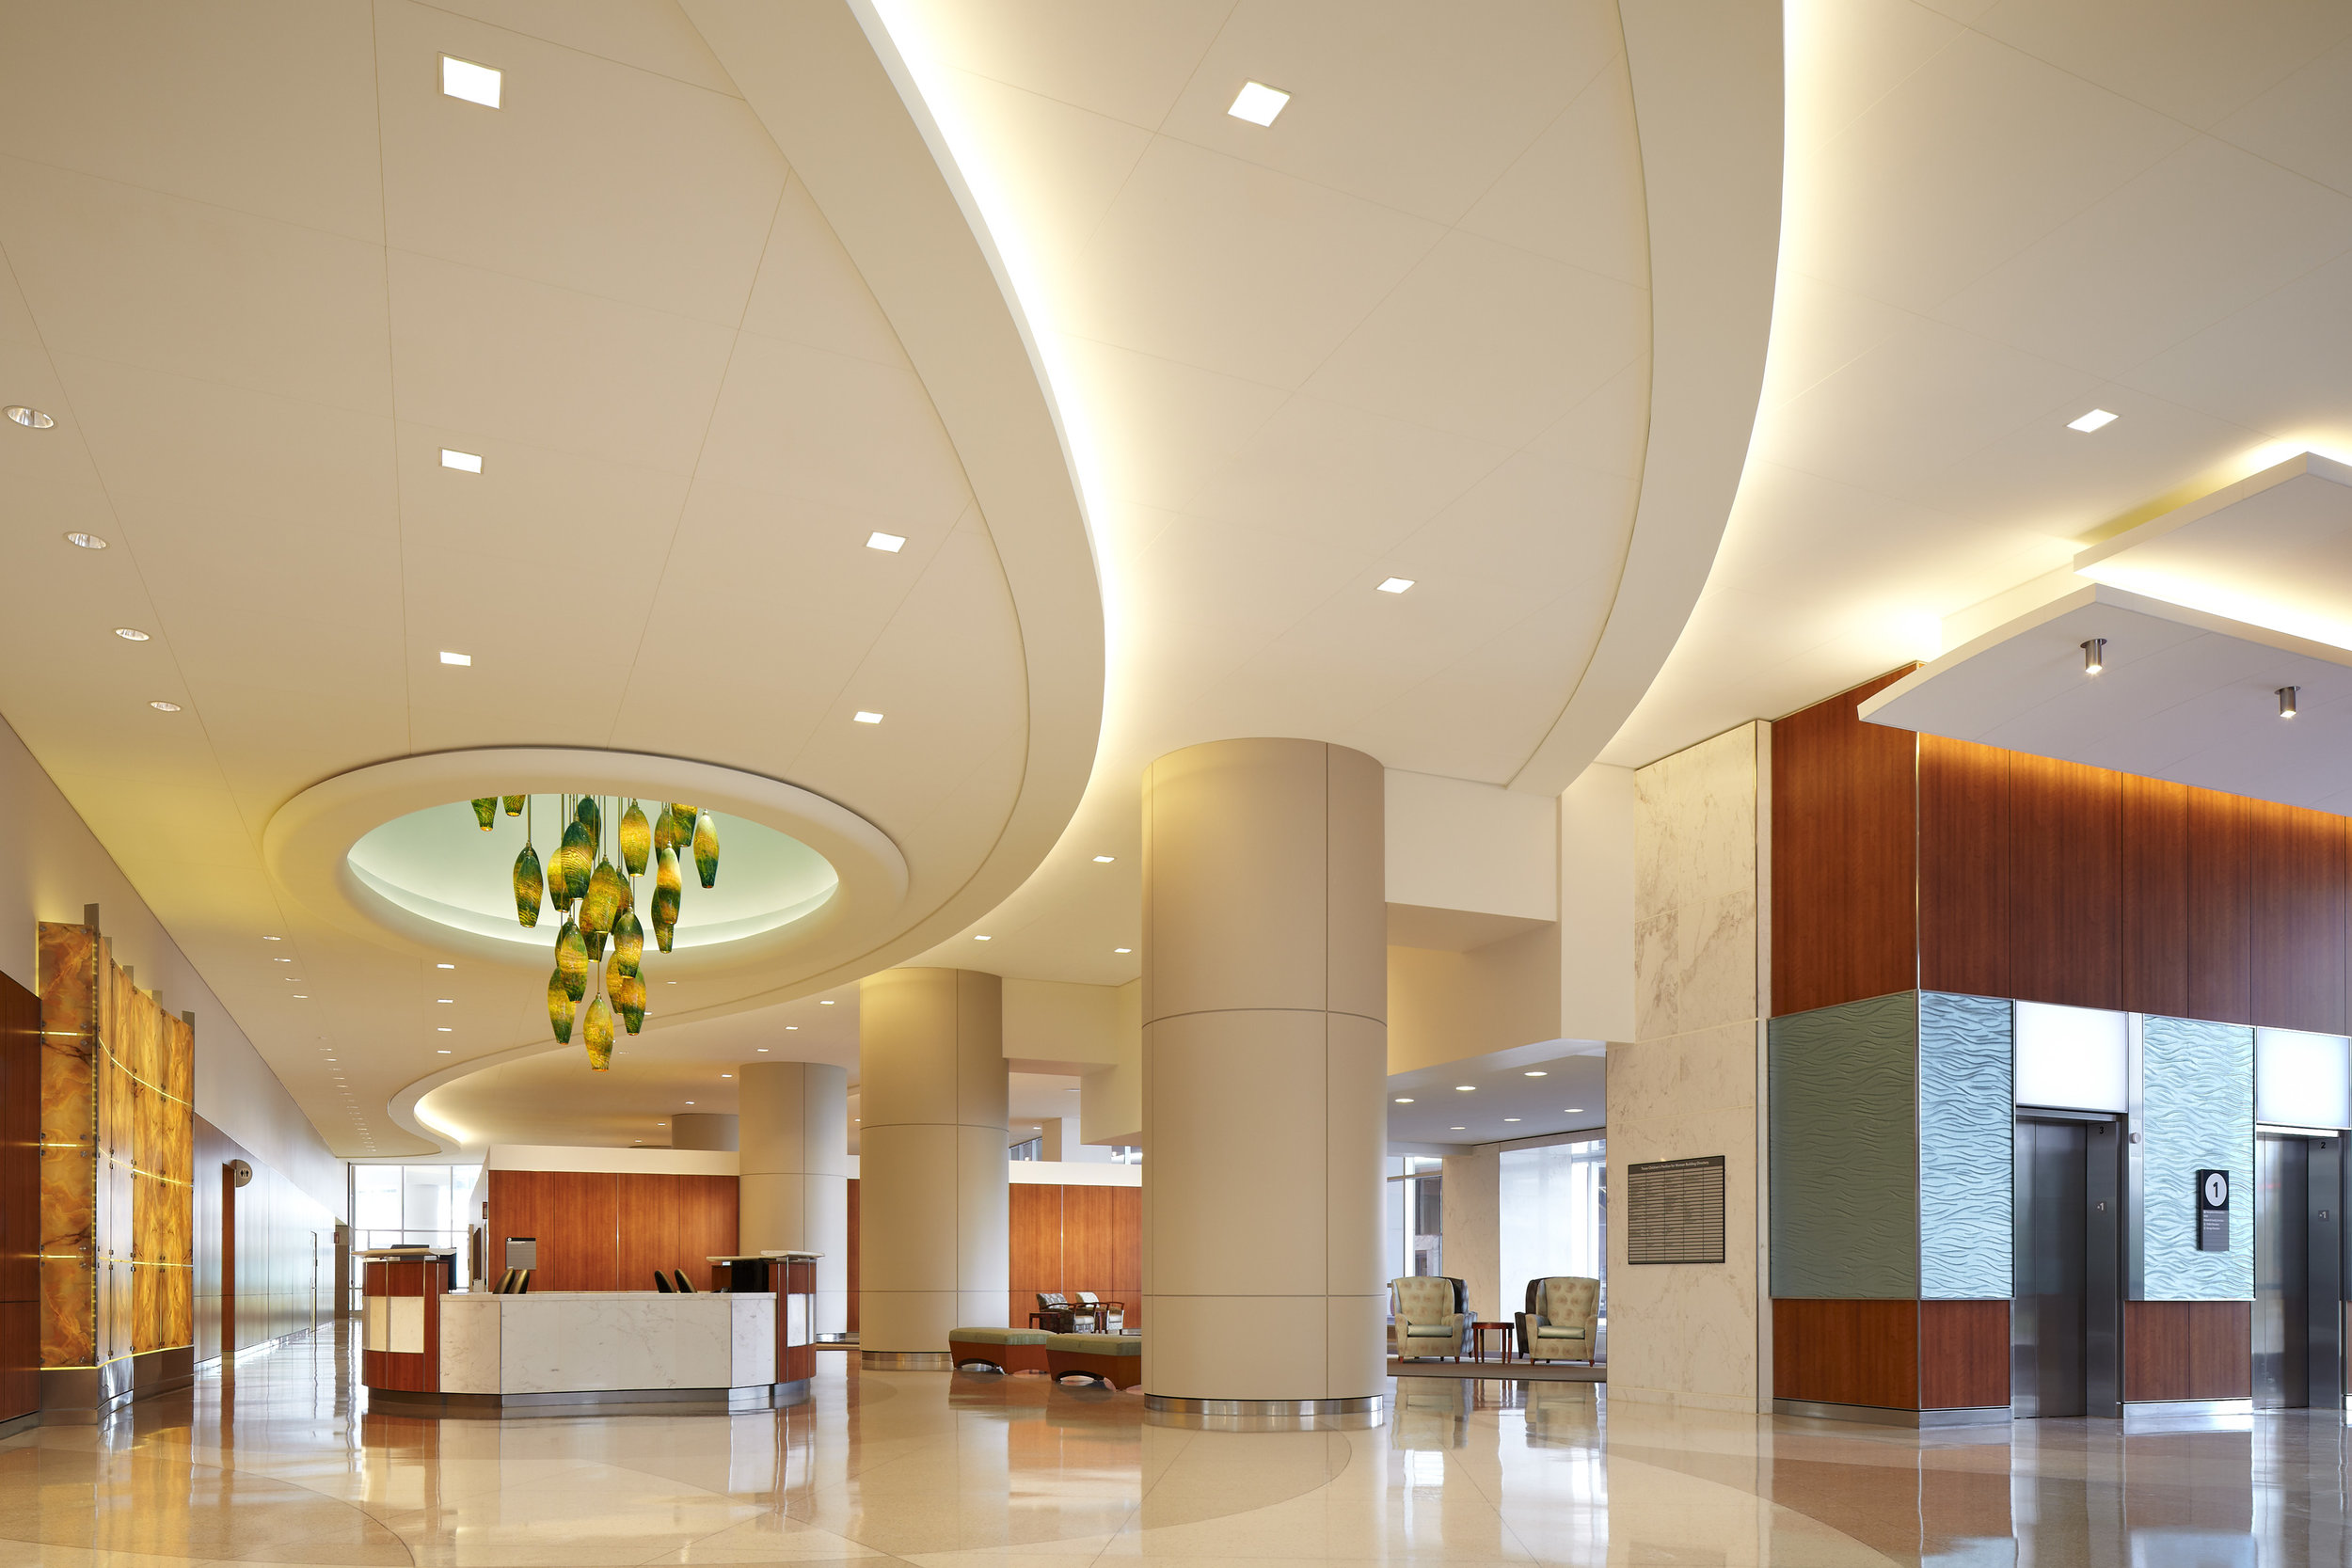 """The """"Jewel""""  art glass lighting piece guides visitors to the front desk at Texas Children's Hospital"""